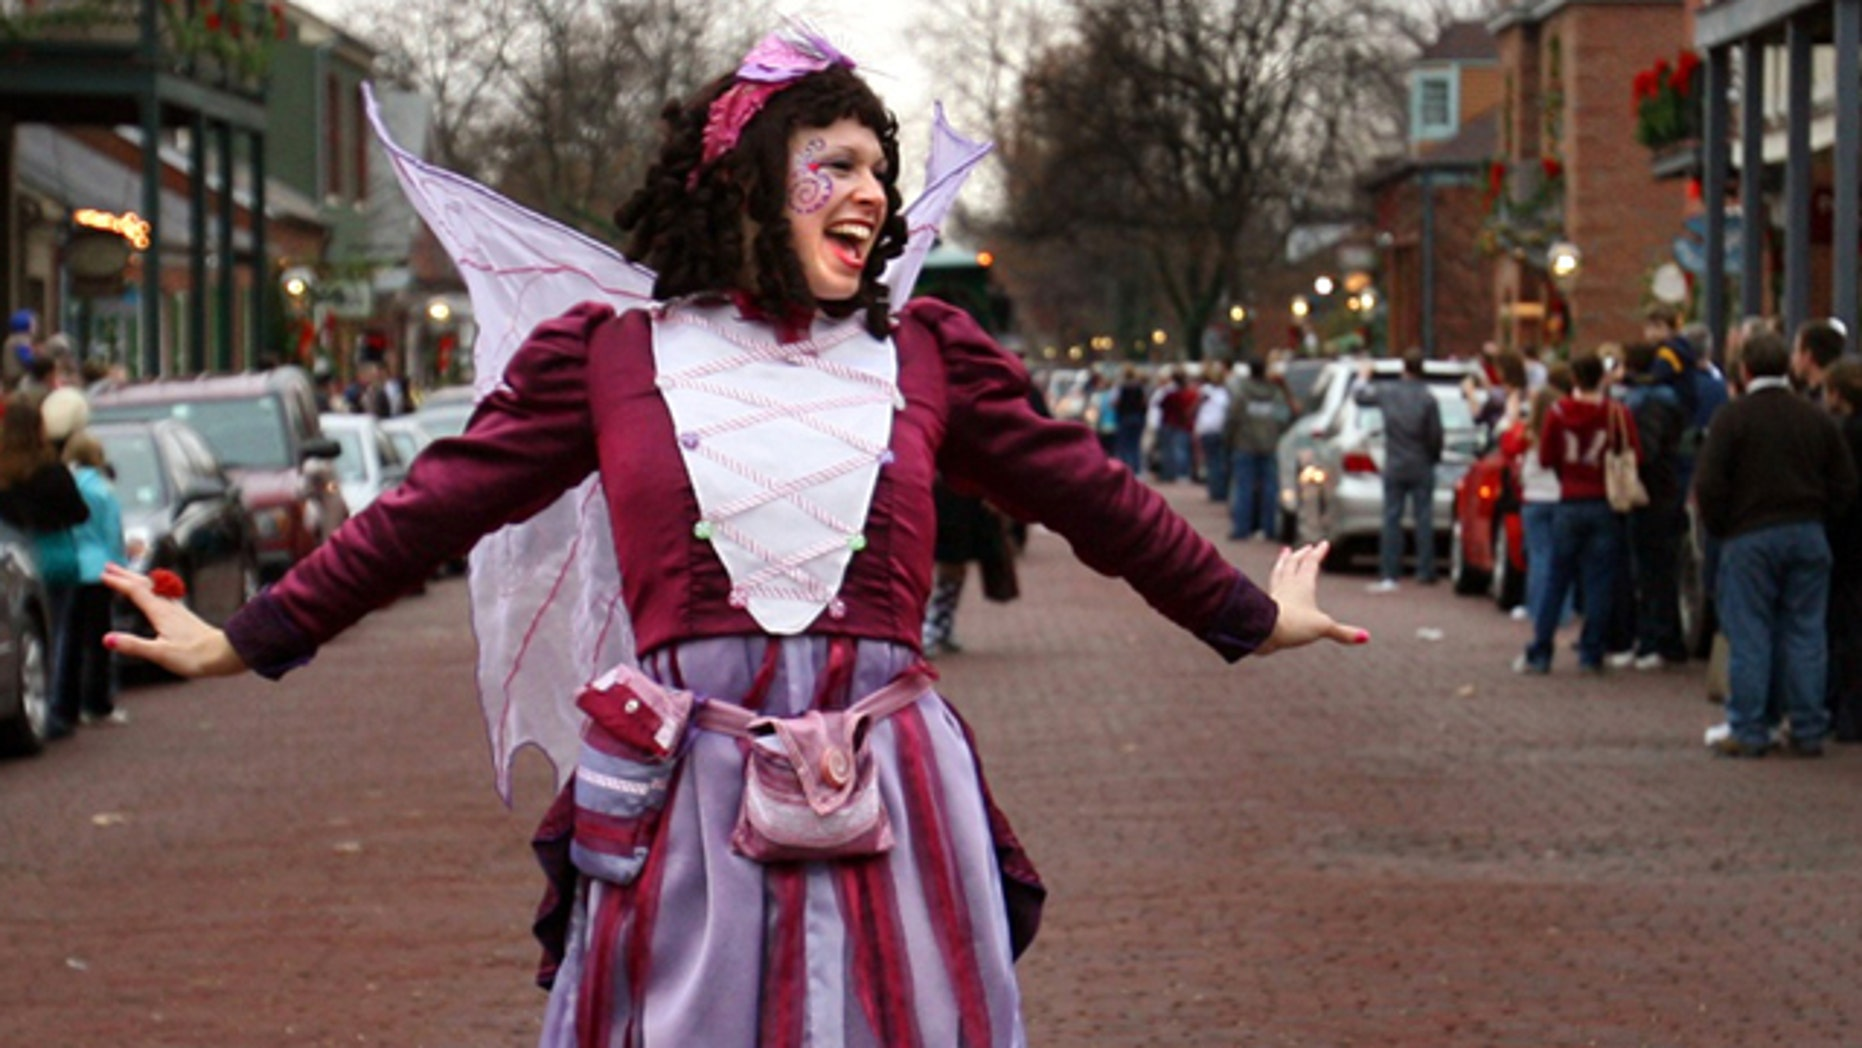 Nov. 29, 2009: Actress Laura Coppinger portrays the Sugar Plum Fairy during St. Charles, Mo.'s annual Christmas festival.